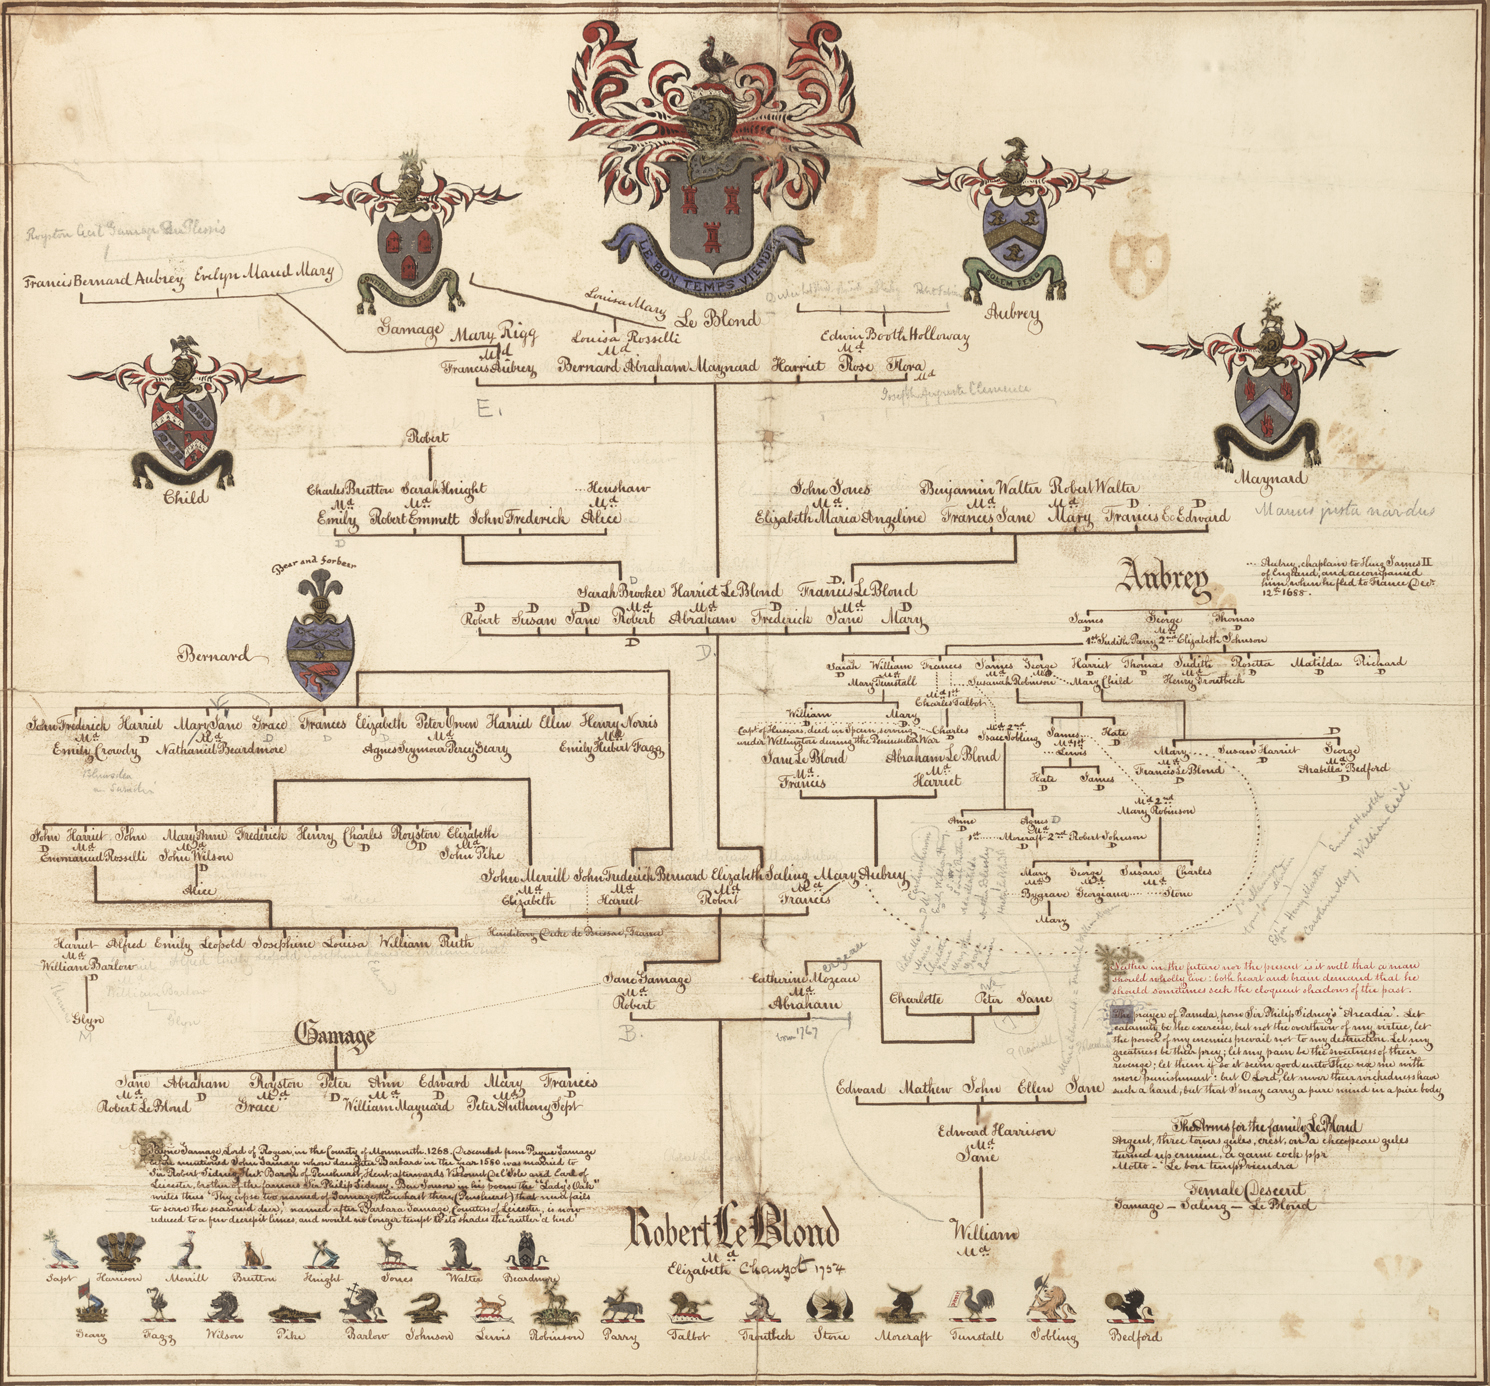 Lawrence LeBlond family tree 1